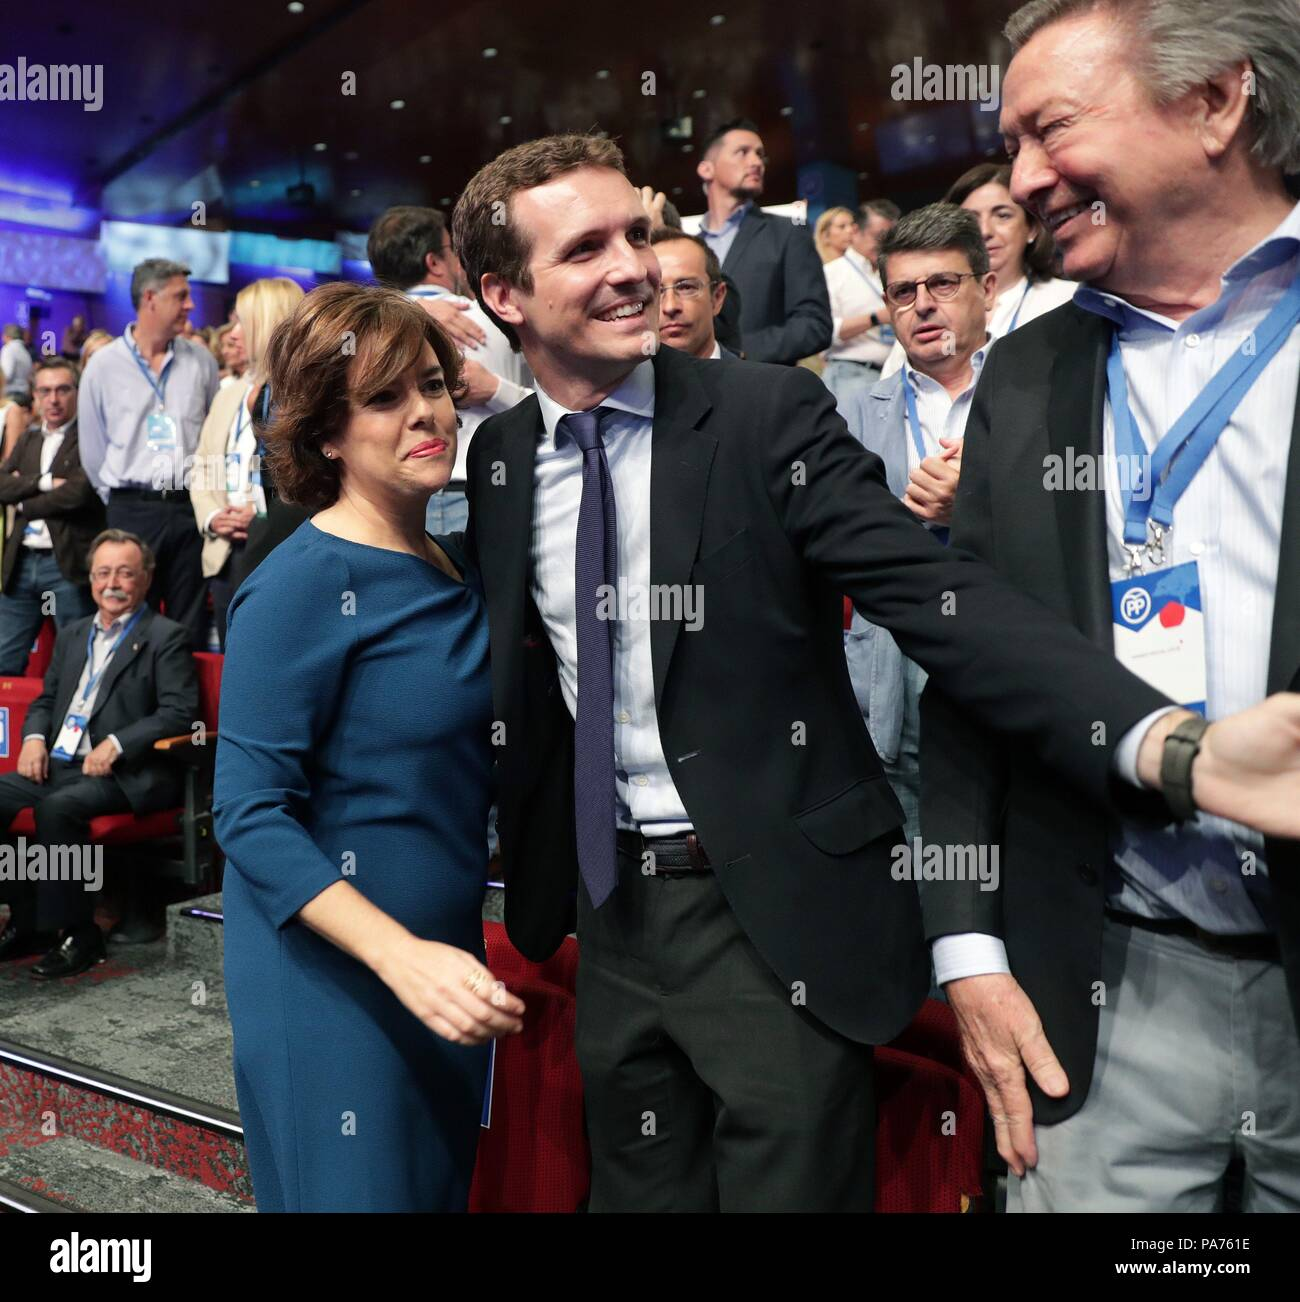 Madrid spain 21 july 2018 candidates to lead the spanish candidates to lead the spanish conservative peoples party pp pablo casado c and soraya saenz de santamaria l greet each other during the peoples m4hsunfo